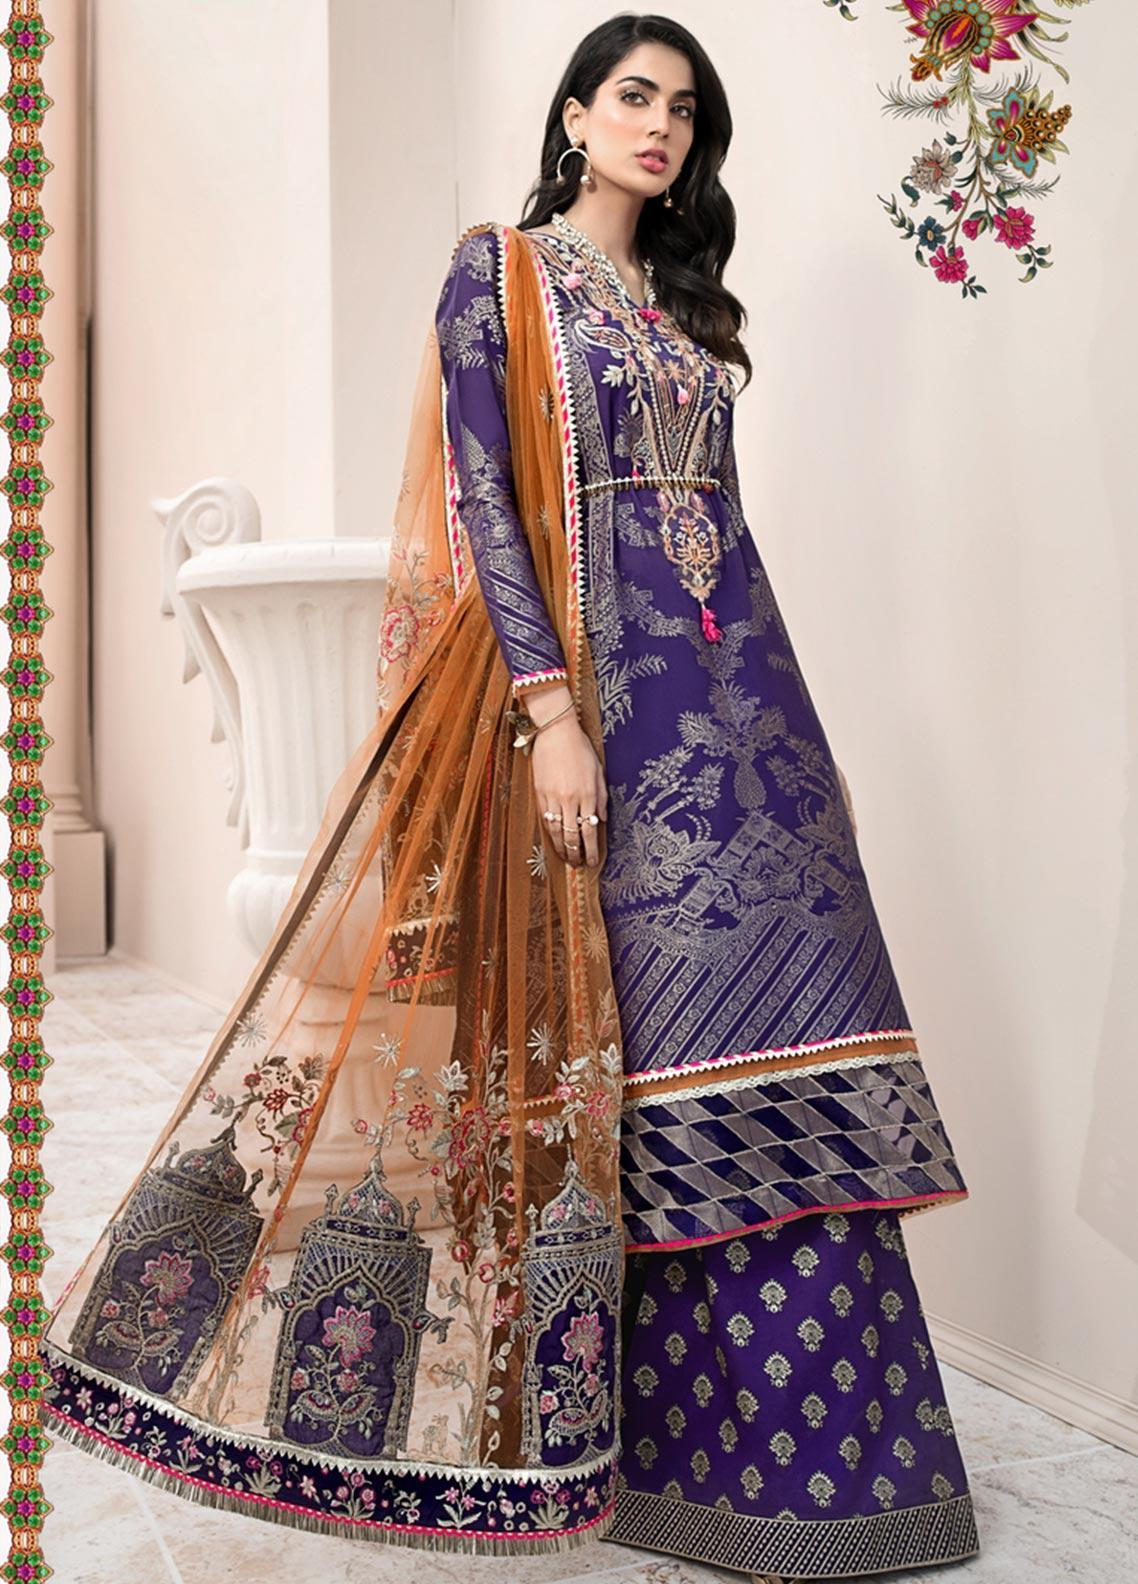 Noor by Saadia Asad Embroidered Jacquard Unstitched 3 Piece Suit SA20NL D10 B - Luxury Collection